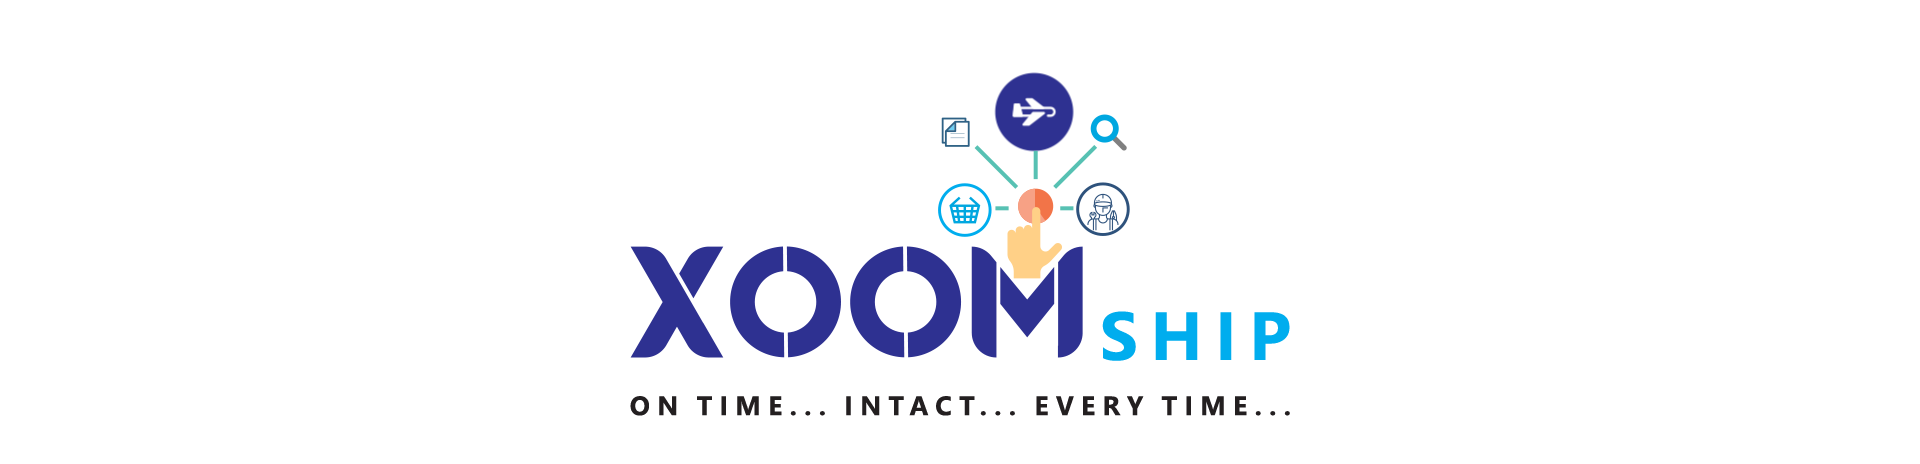 Welcome to Xoom Shipping and Logistics